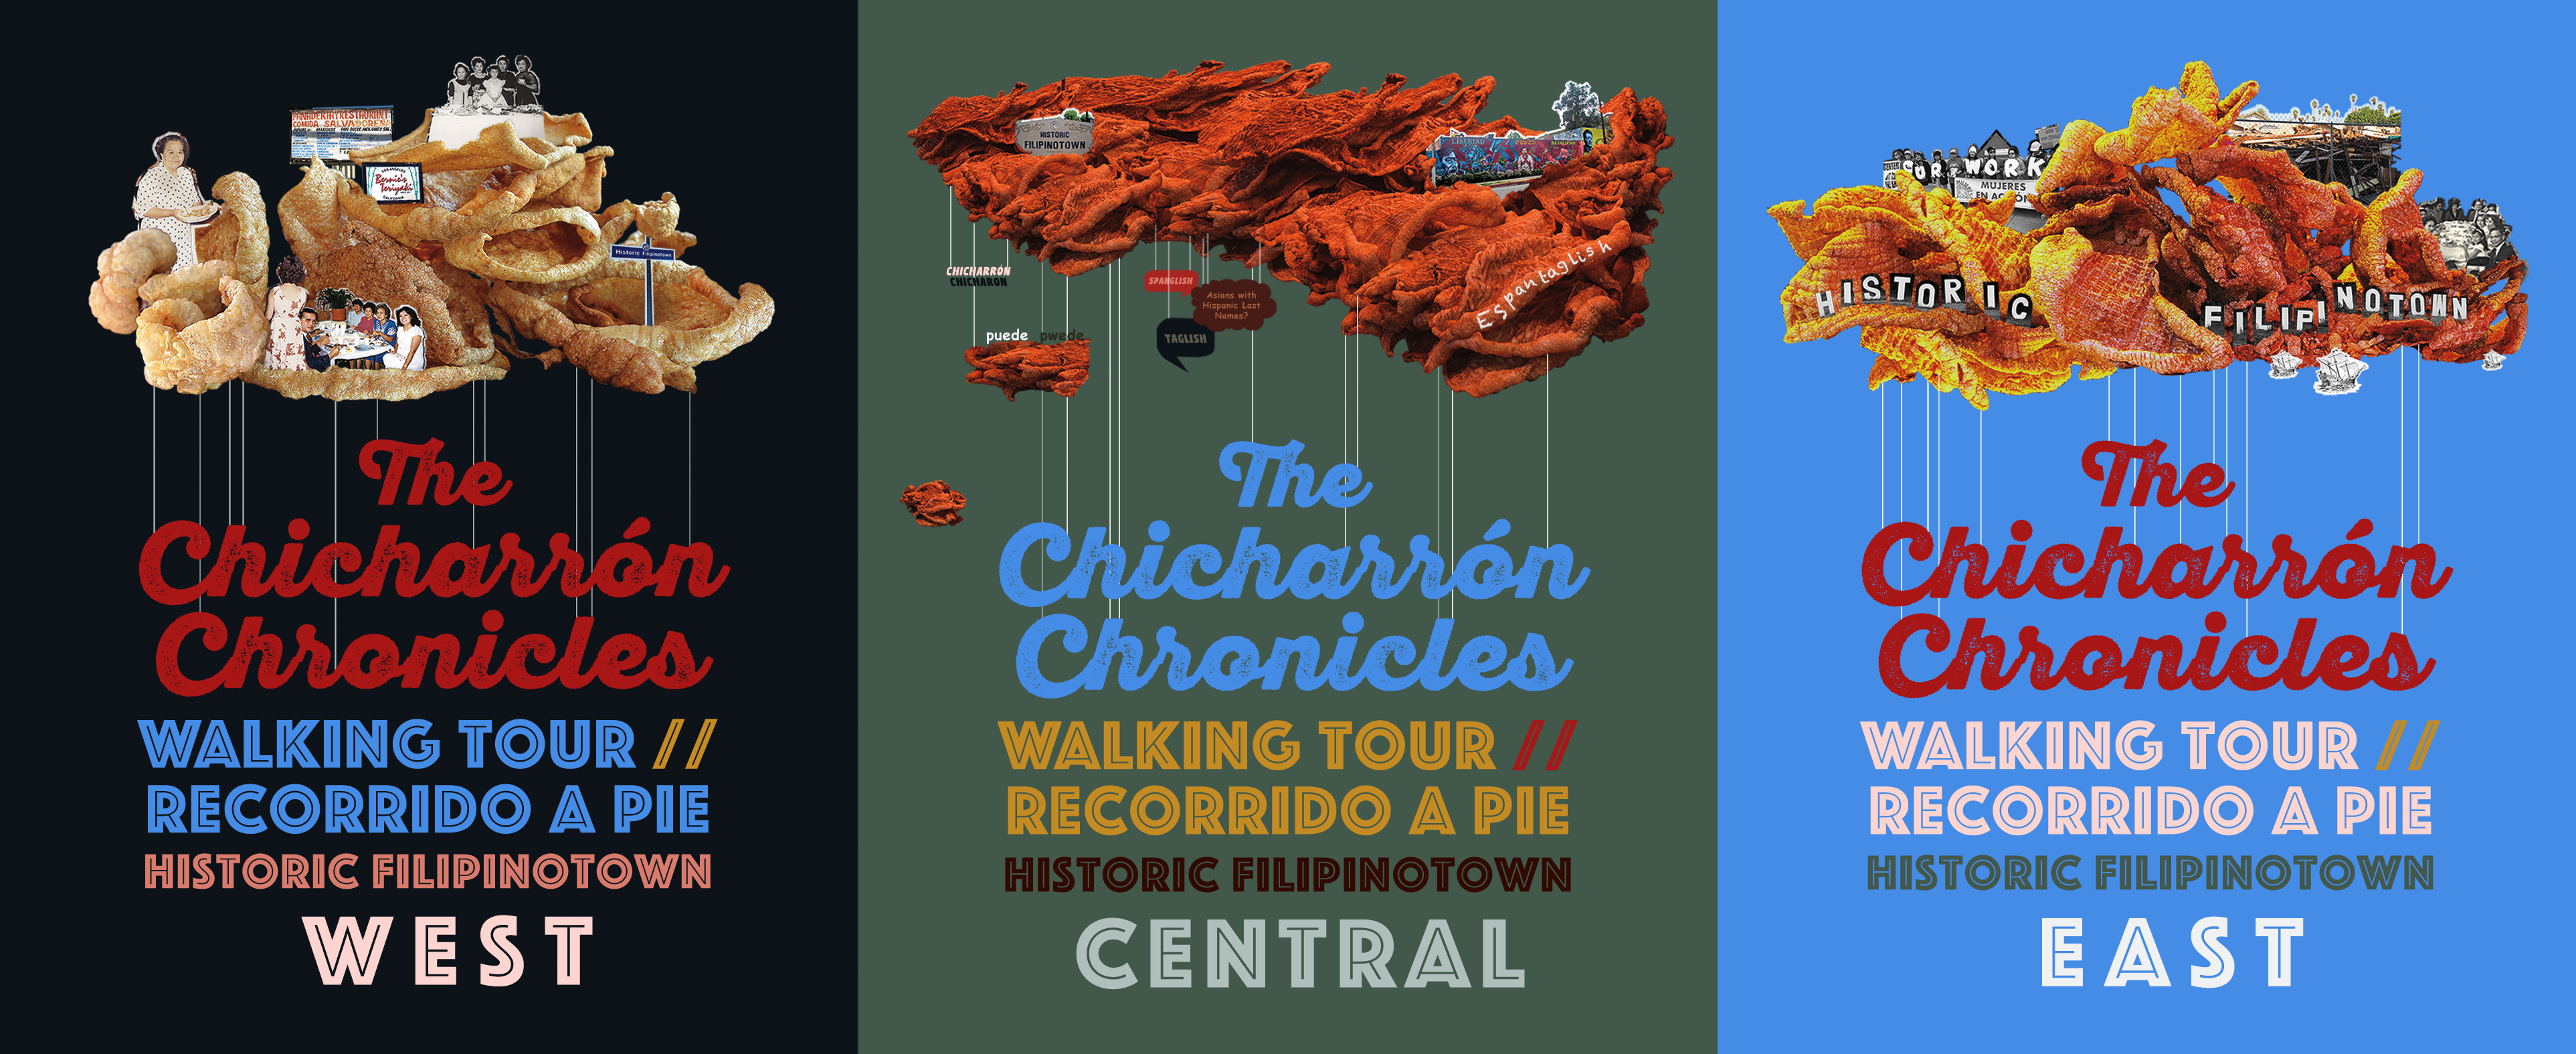 postcard image of the Chicharron Chronicles Walking Tours for West, Central, and East